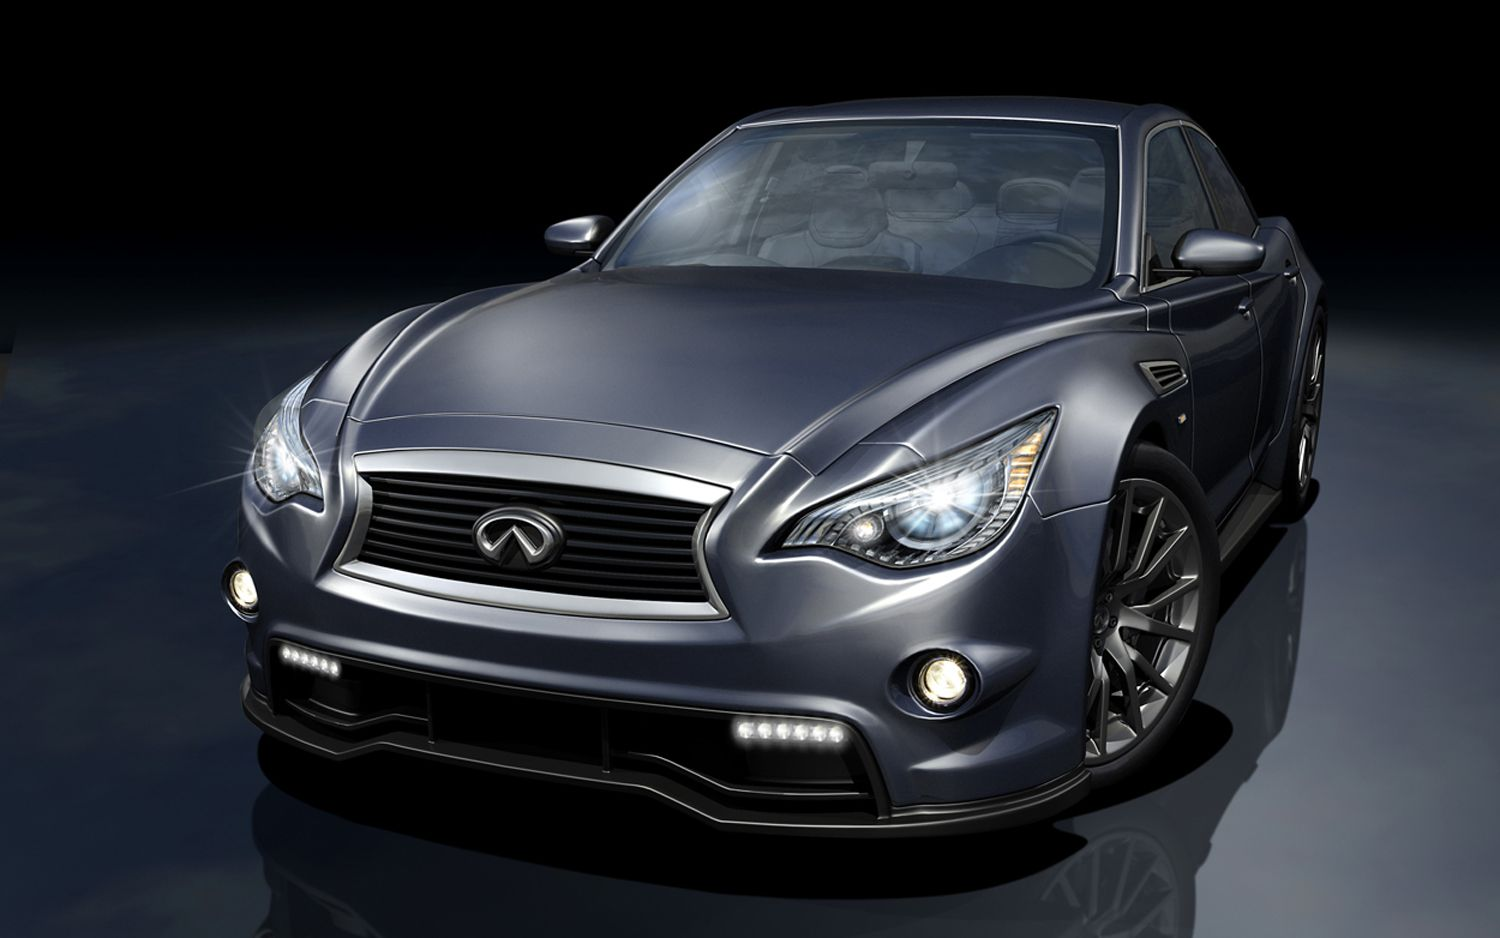 Next Infiniti IPL G Coupe will have 530 HP twin turbo V6?!